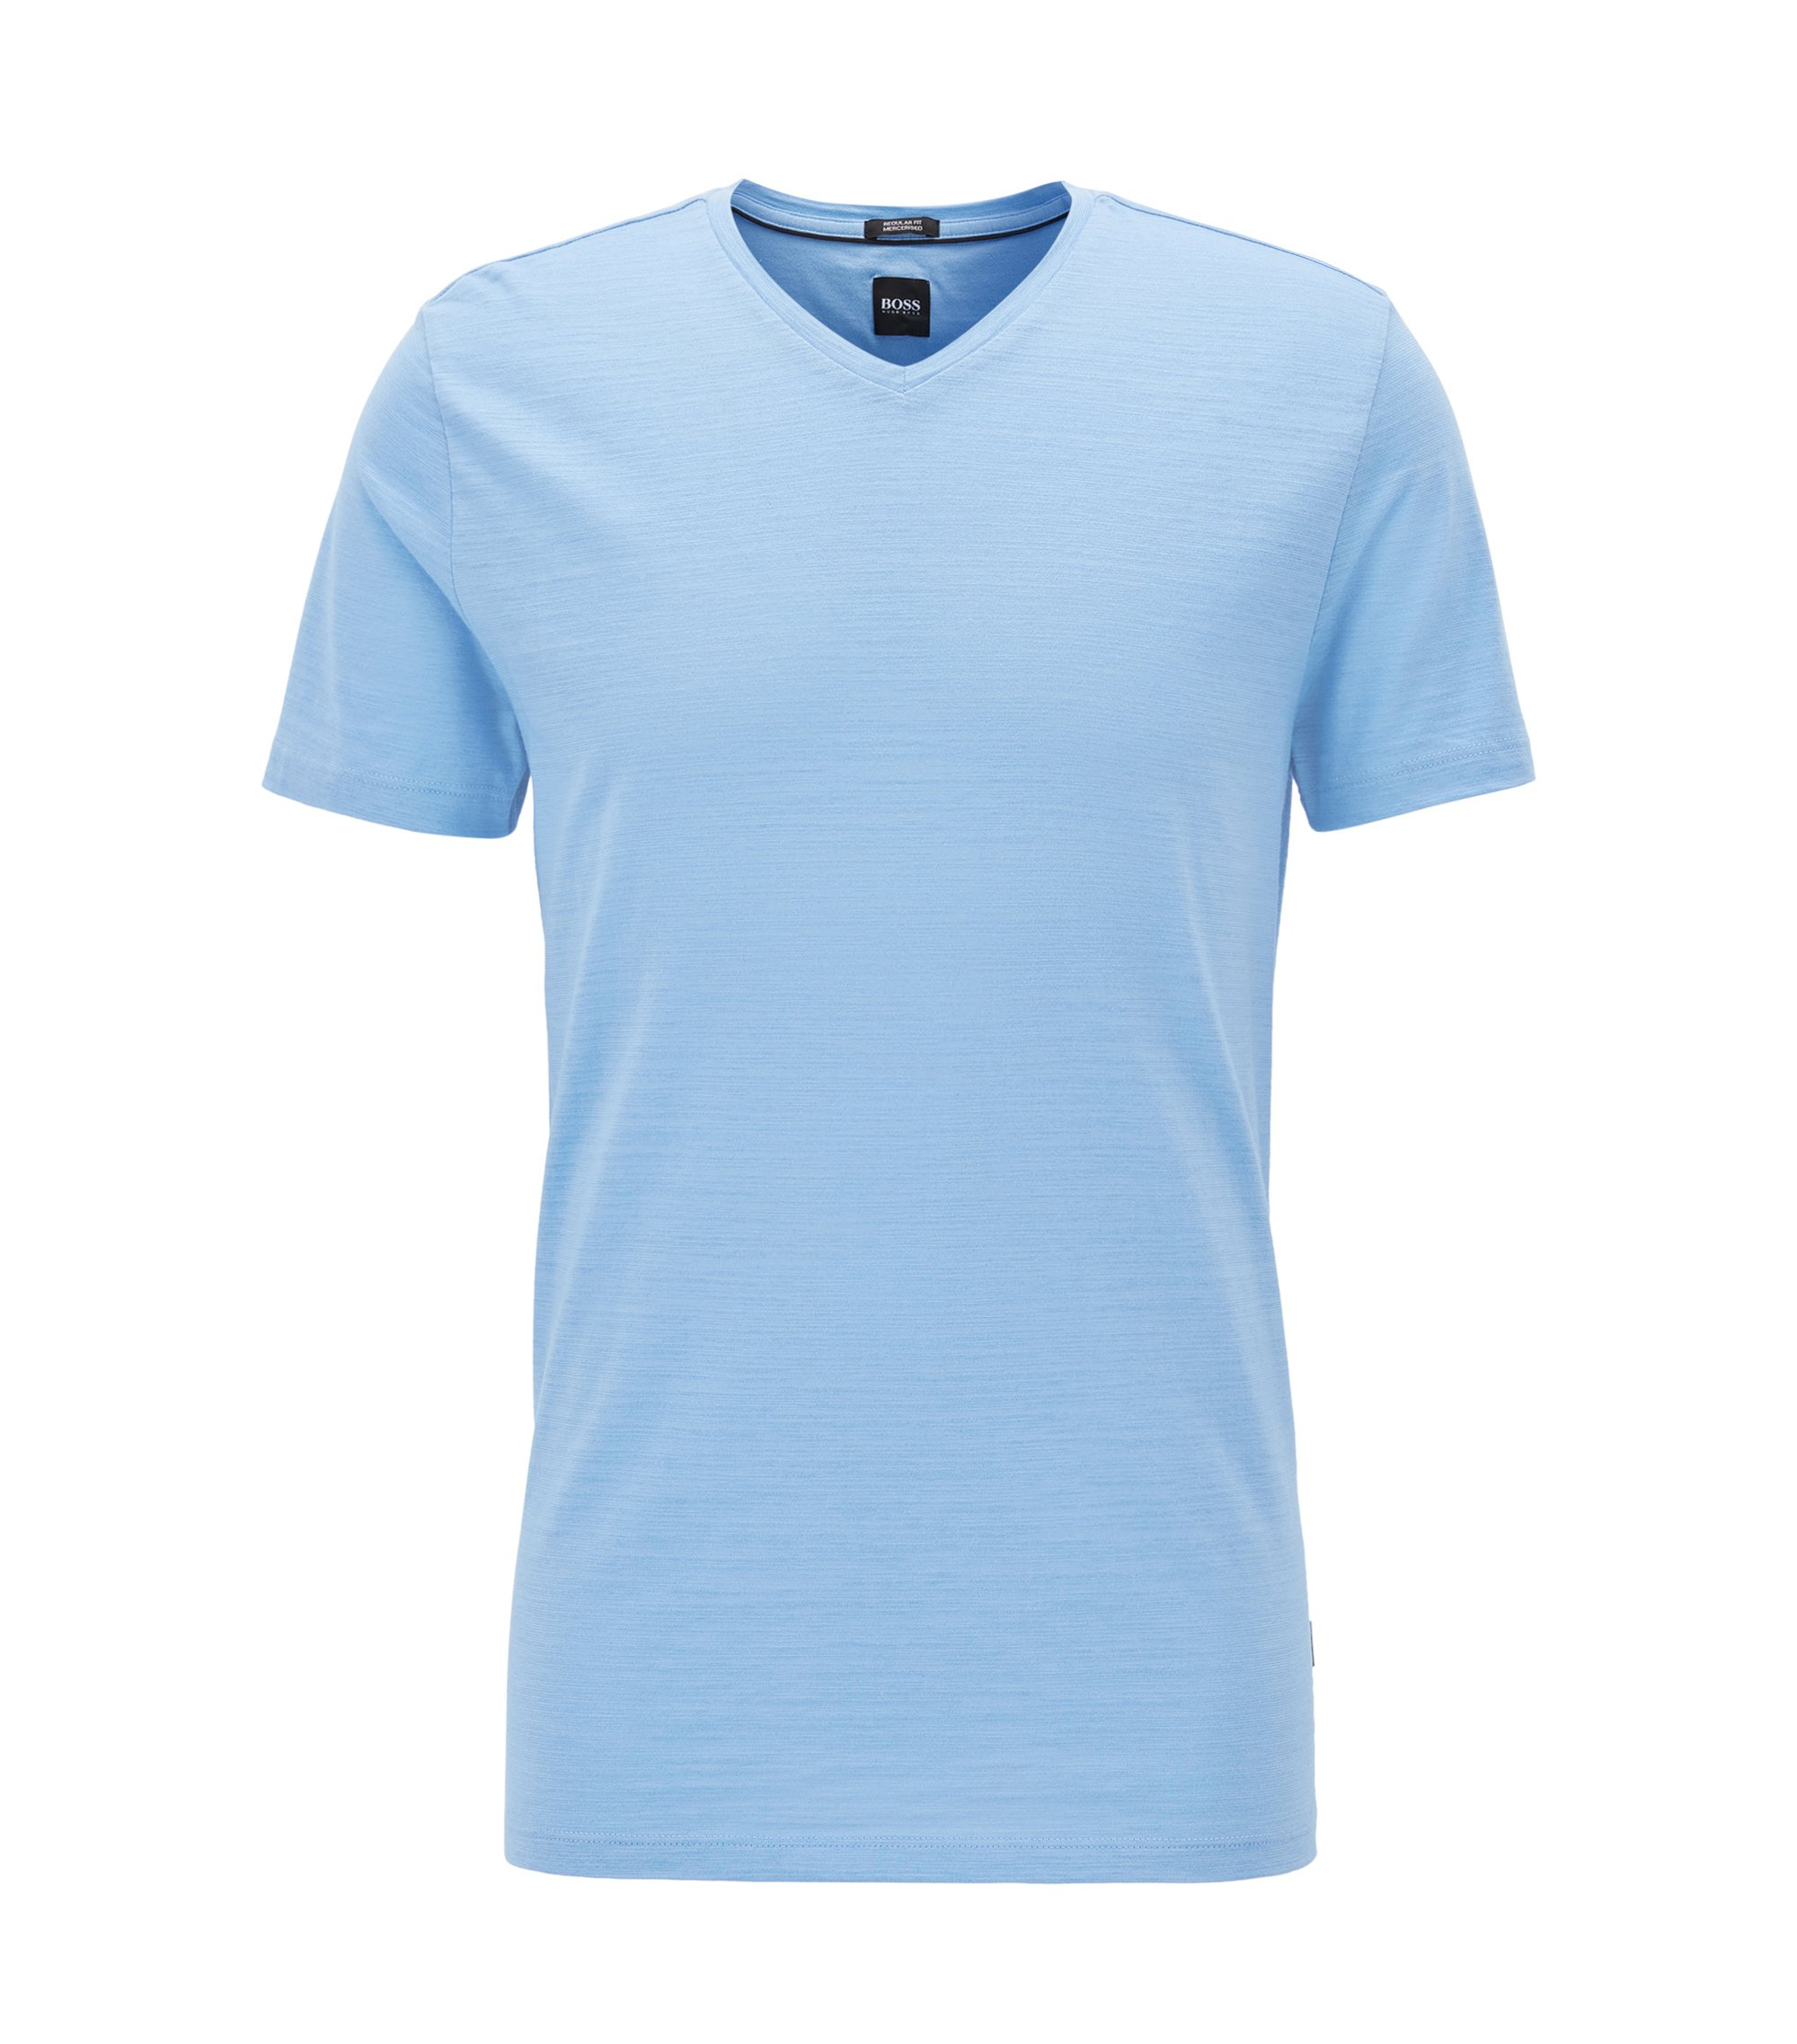 Regular-fit T-shirt in mercerized cotton, Light Blue